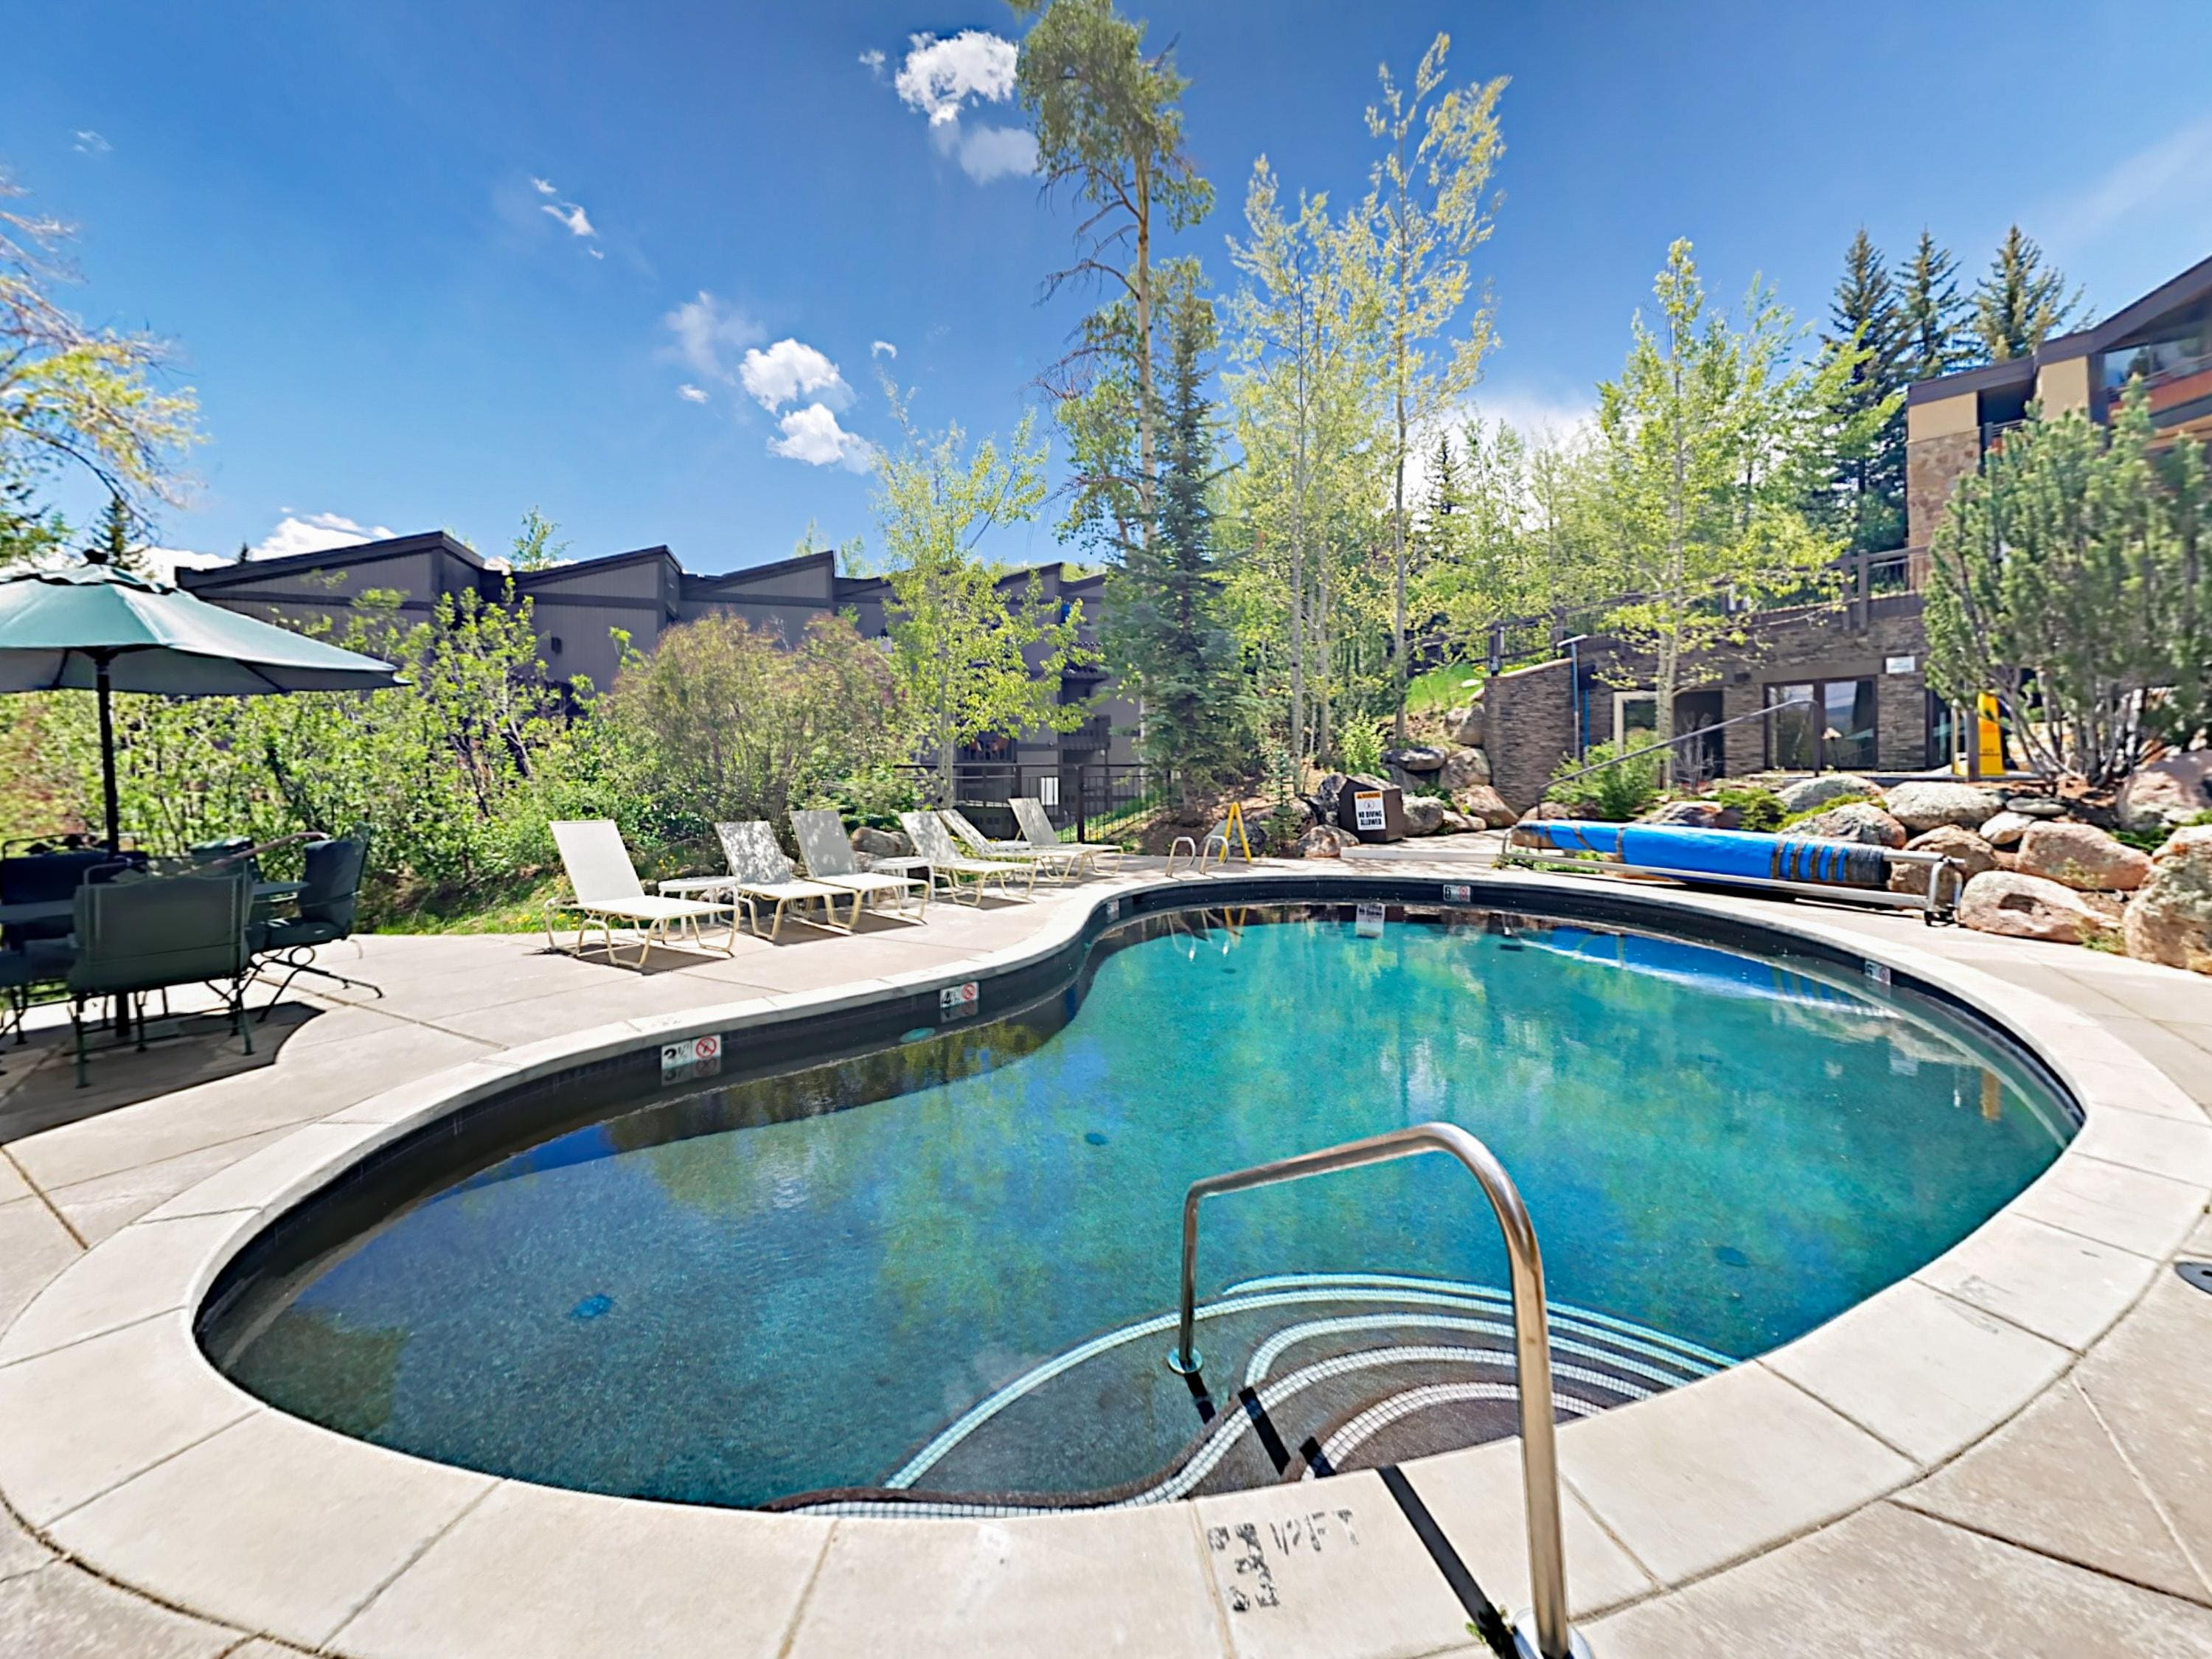 Aspenwood amenities include a shared heated pool and 2 hot tubs.